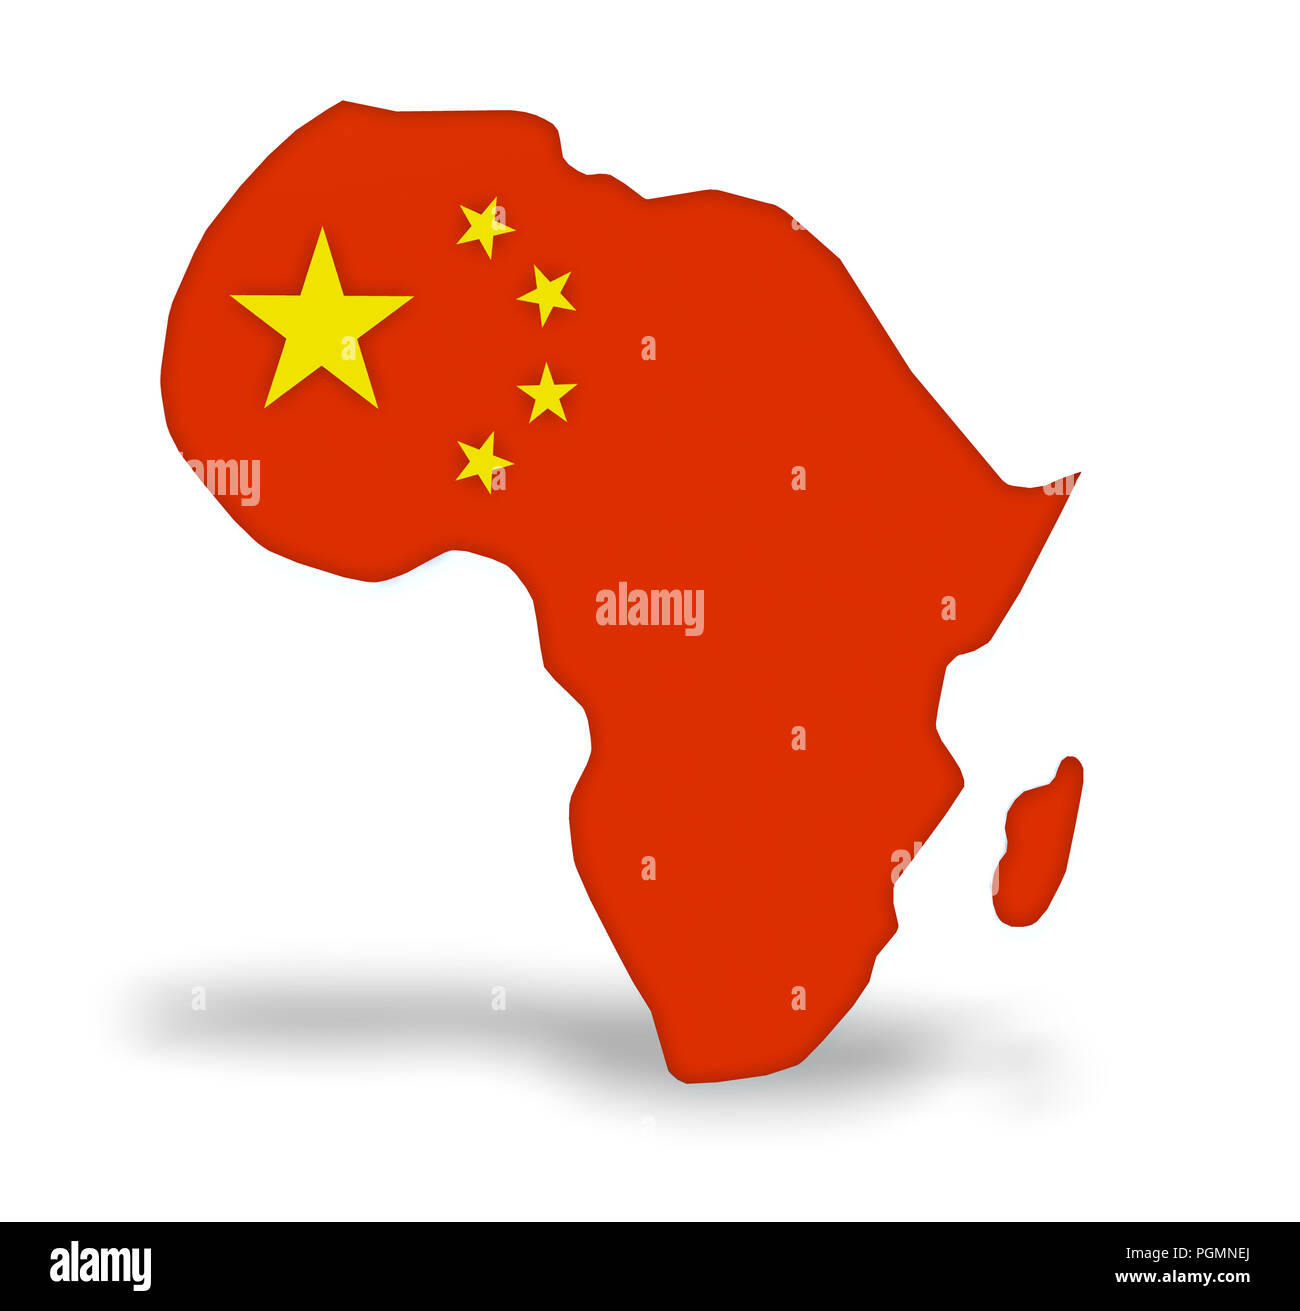 China invest in Africa, 3d illustration - Stock Image